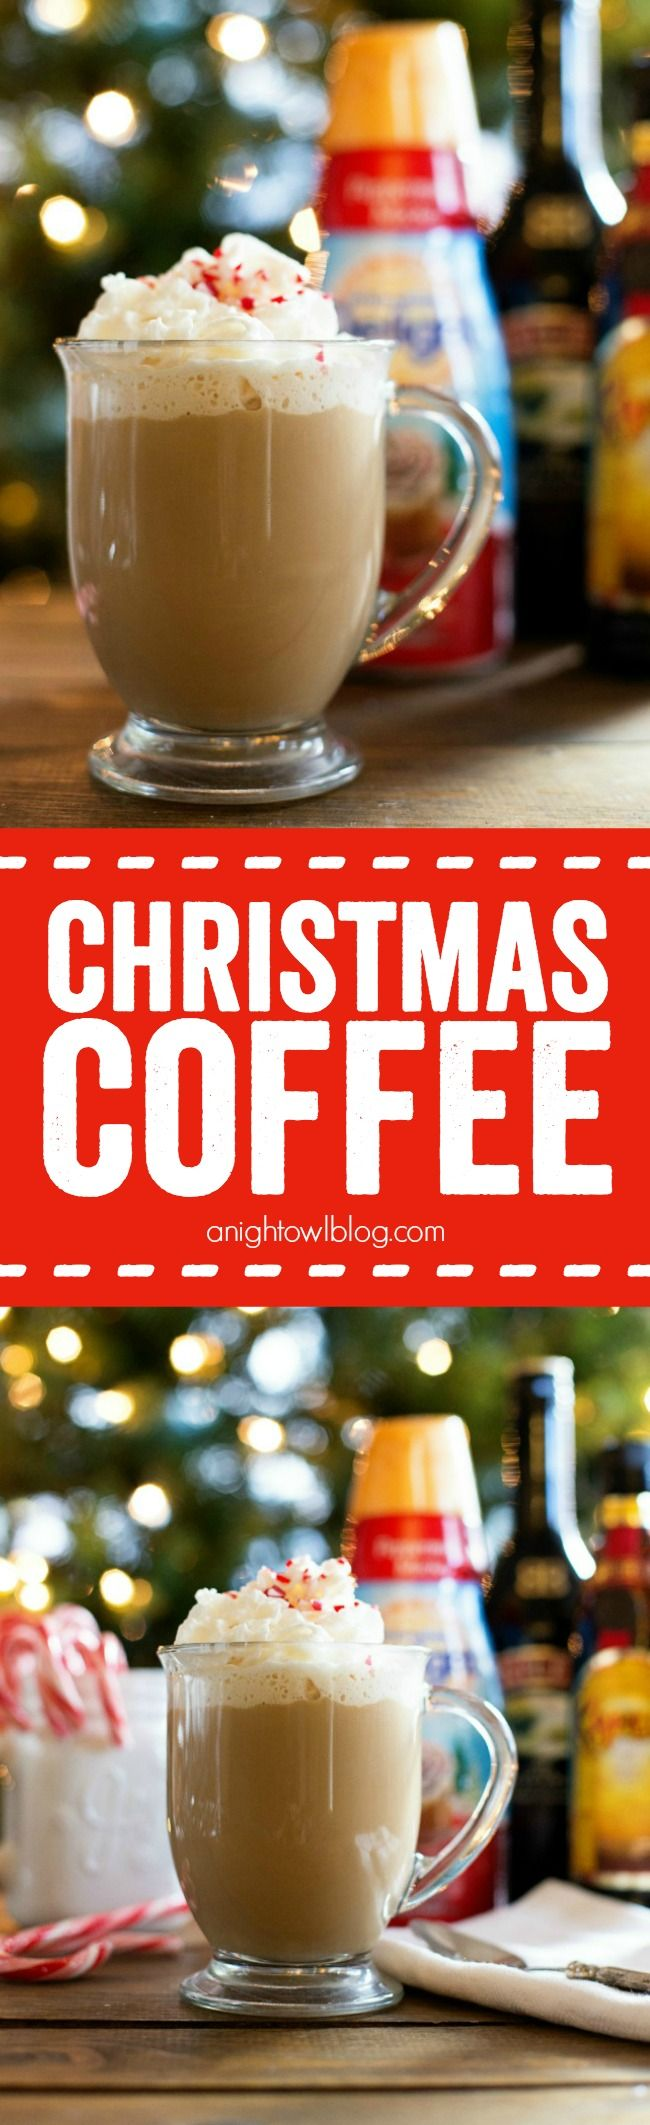 Whip up a little Christmas Coffee this year - a delicious spiked blend of coffee and peppermint. Make those spirits bright!: